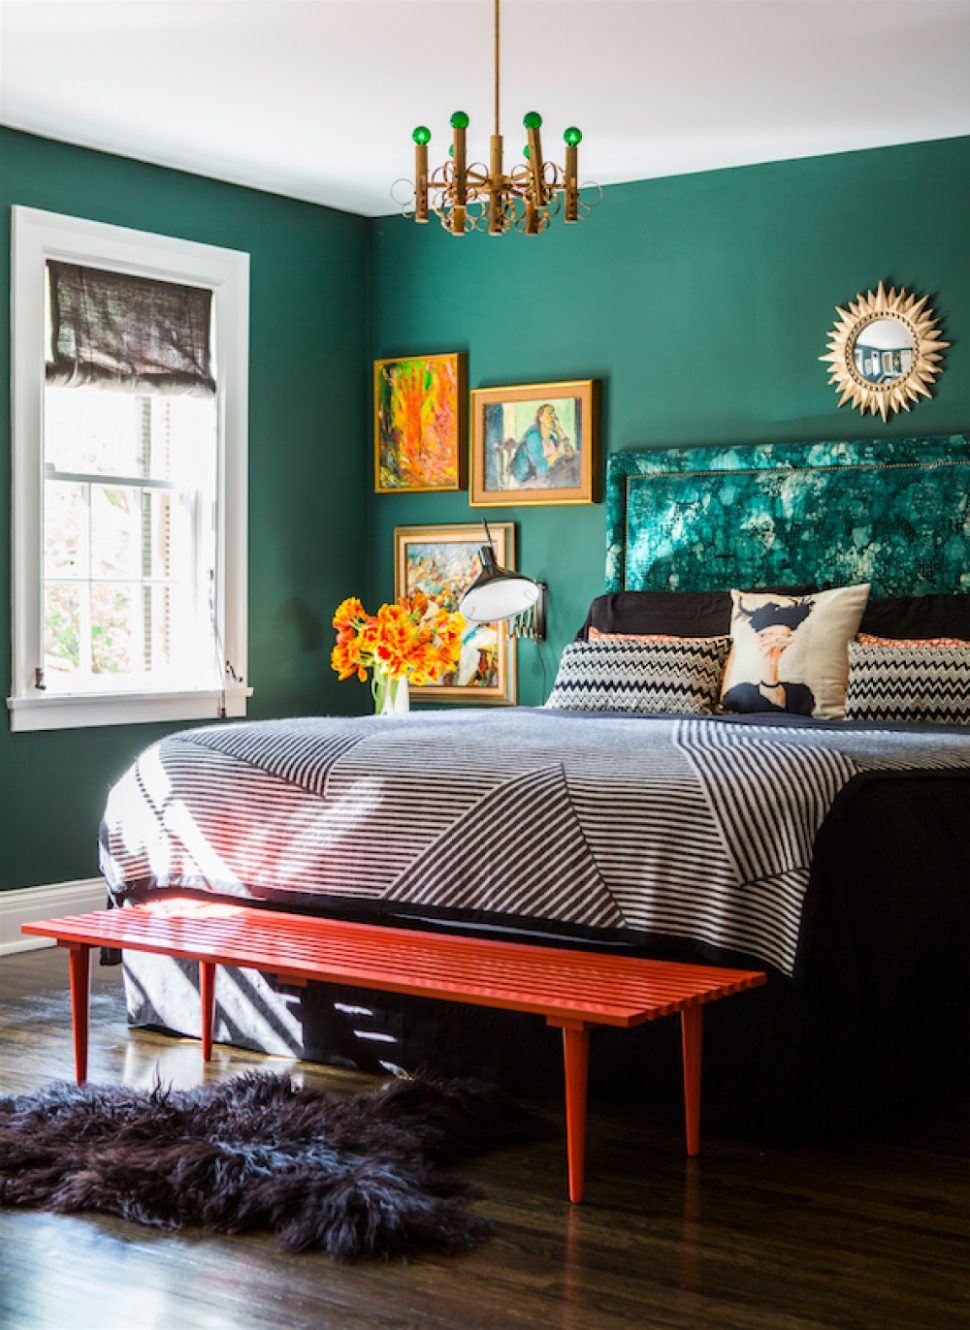 11 Times Complementary Colors Looked Totally Badass Together ..